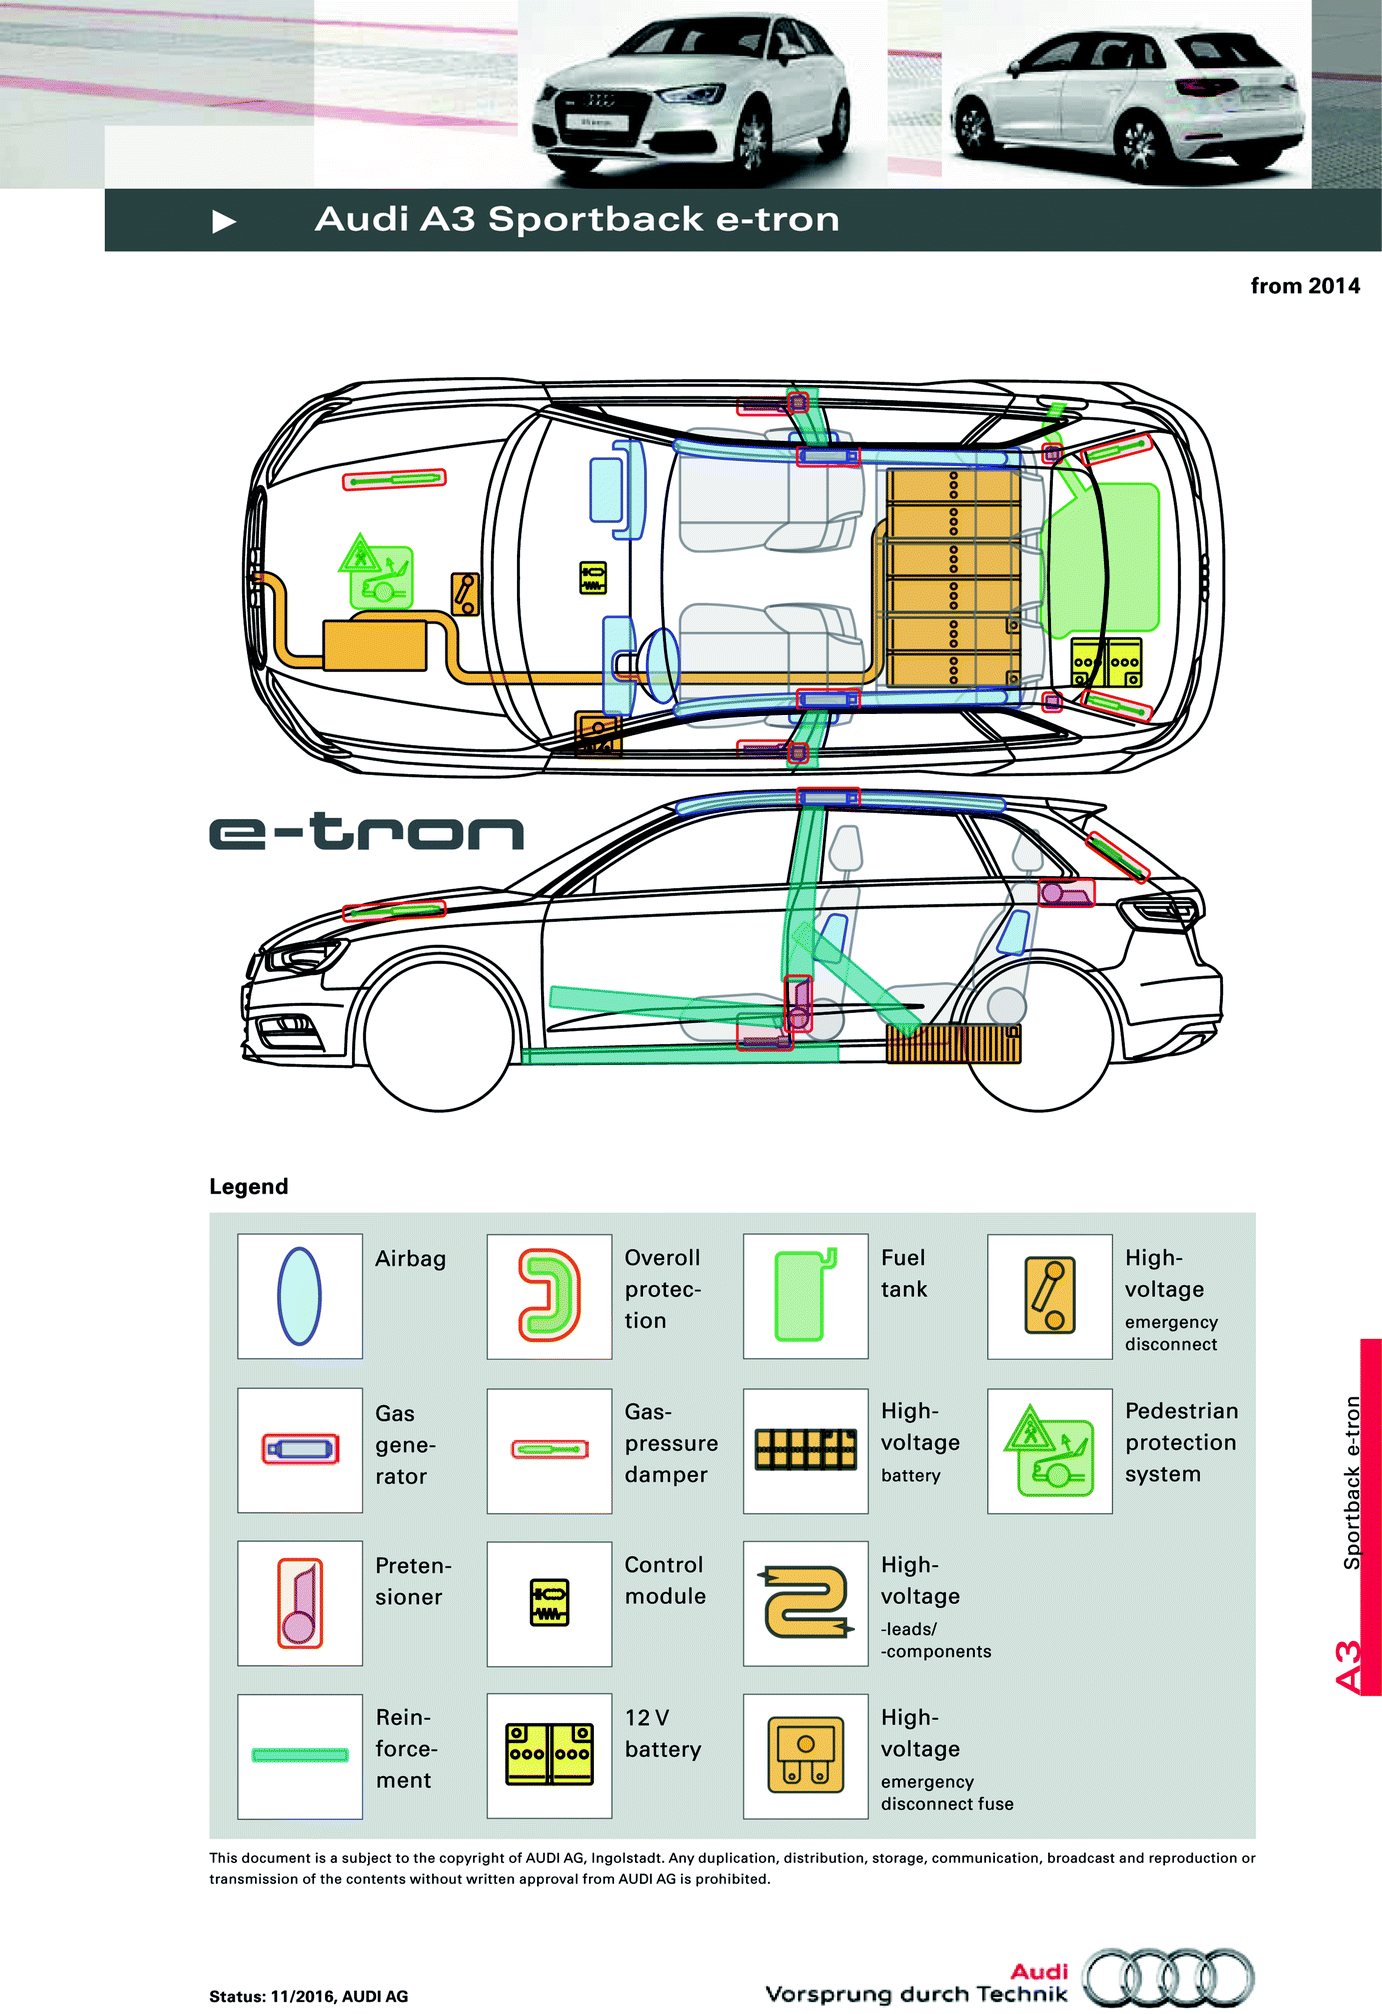 Electrical Safety Springerlink Automotive Software Runaway Power Content From Electronic Design Open Image In New Window